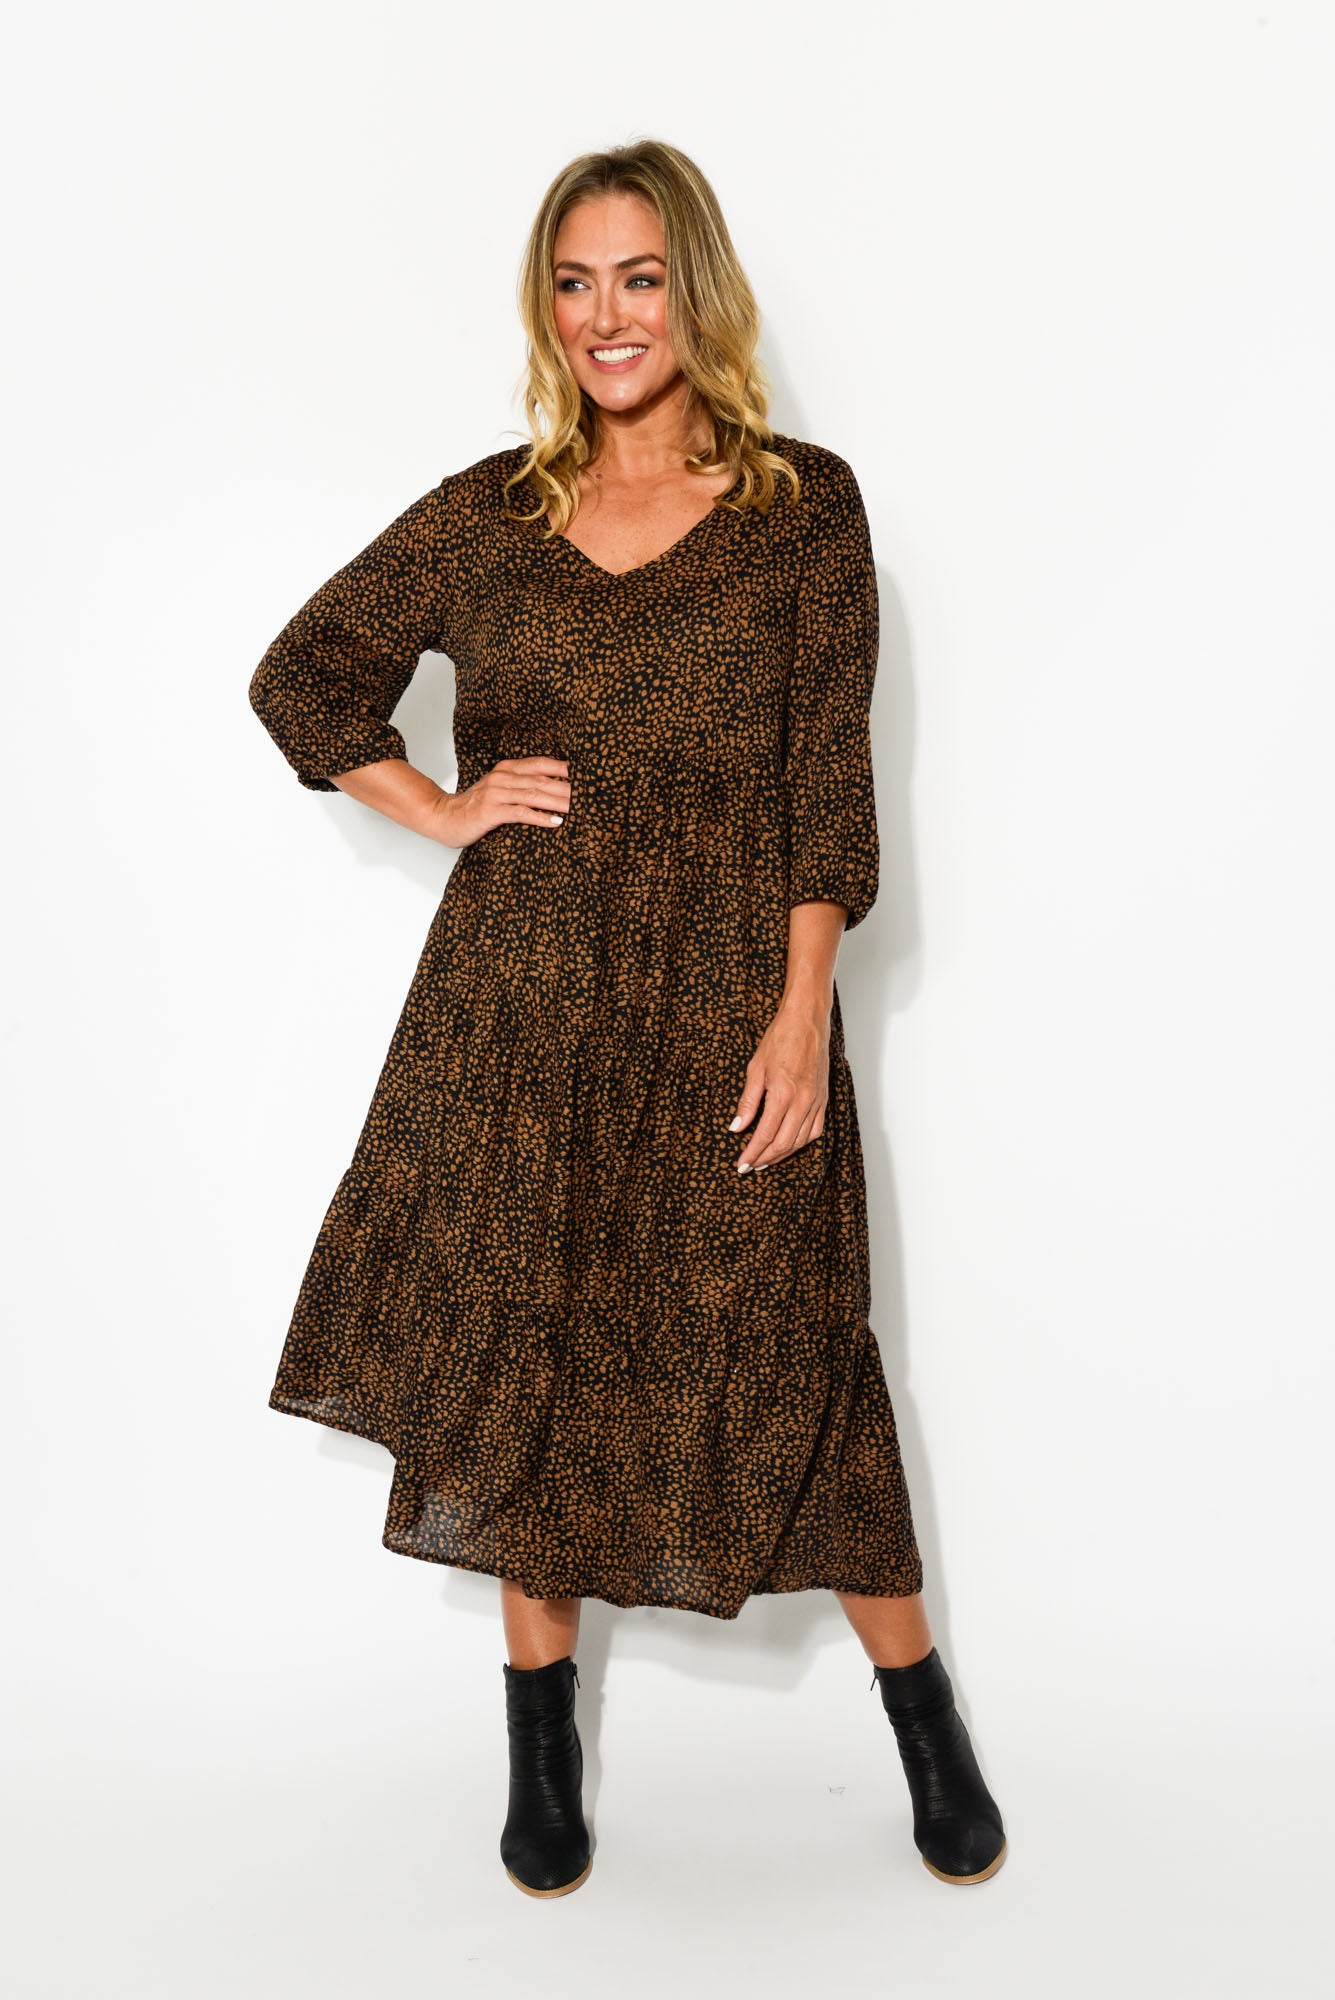 Cheetah Sleeved Tier Dress - Blue Bungalow